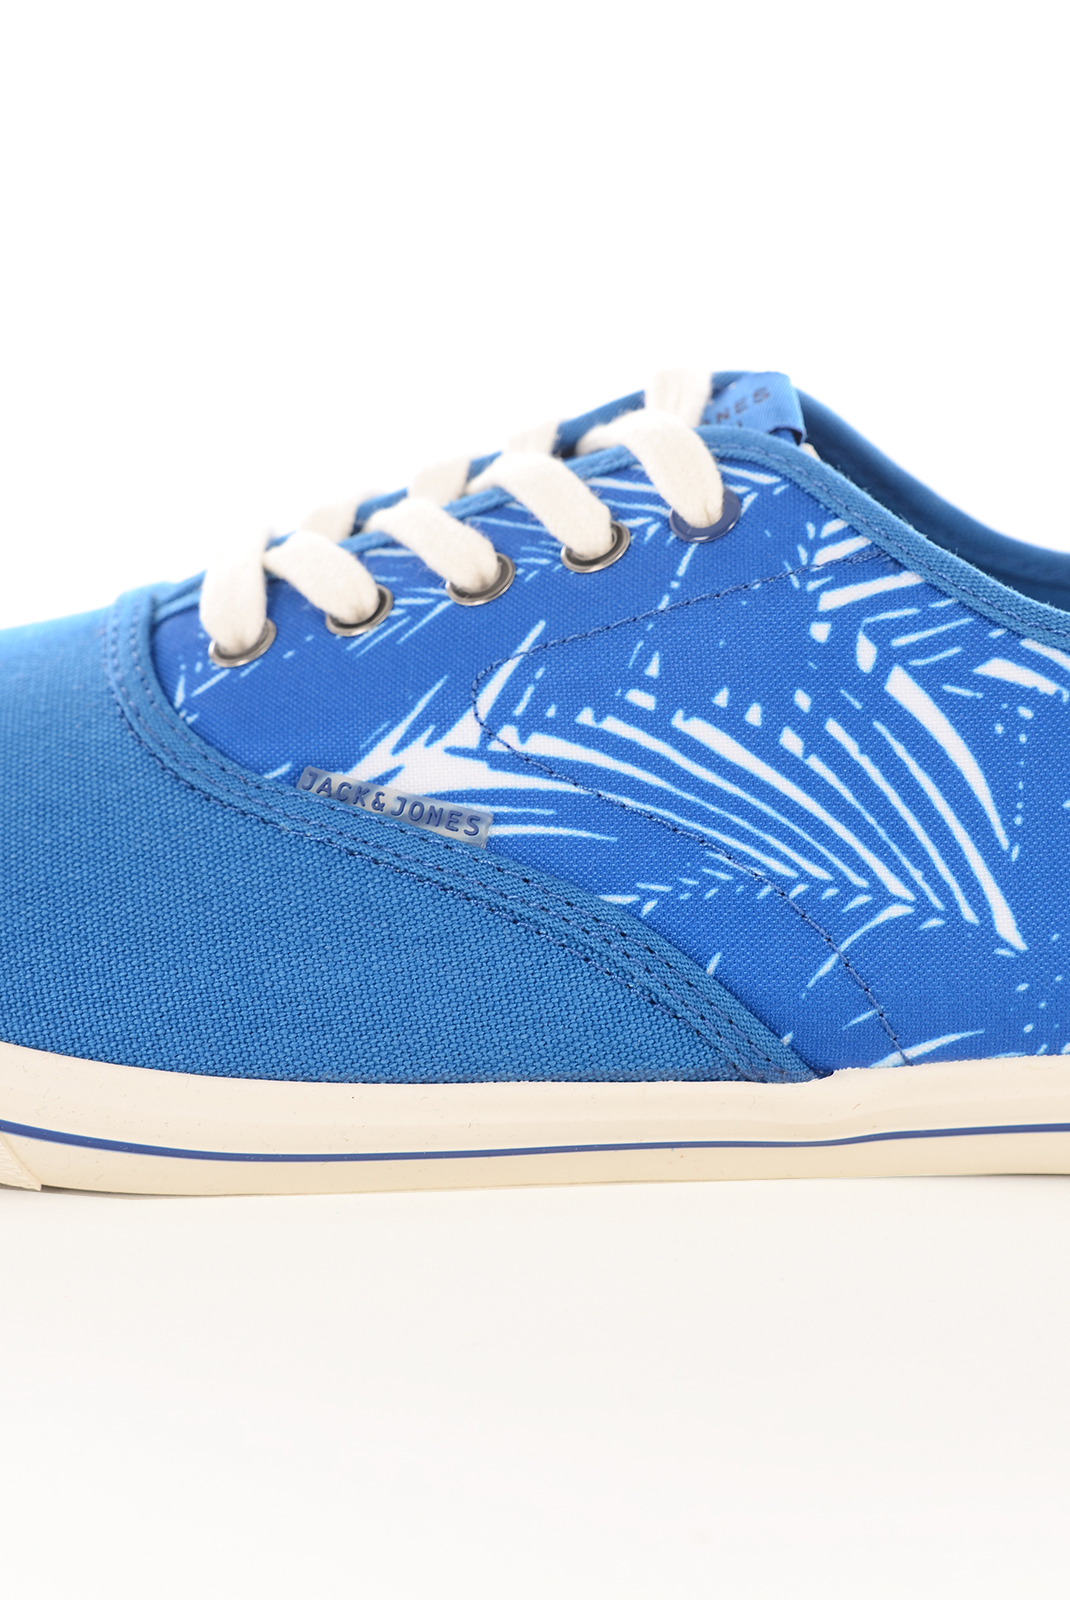 Chaussures   Jack & Jones SPIDER CANVAS PRINT SNEAKER IMPERIAL BLUE